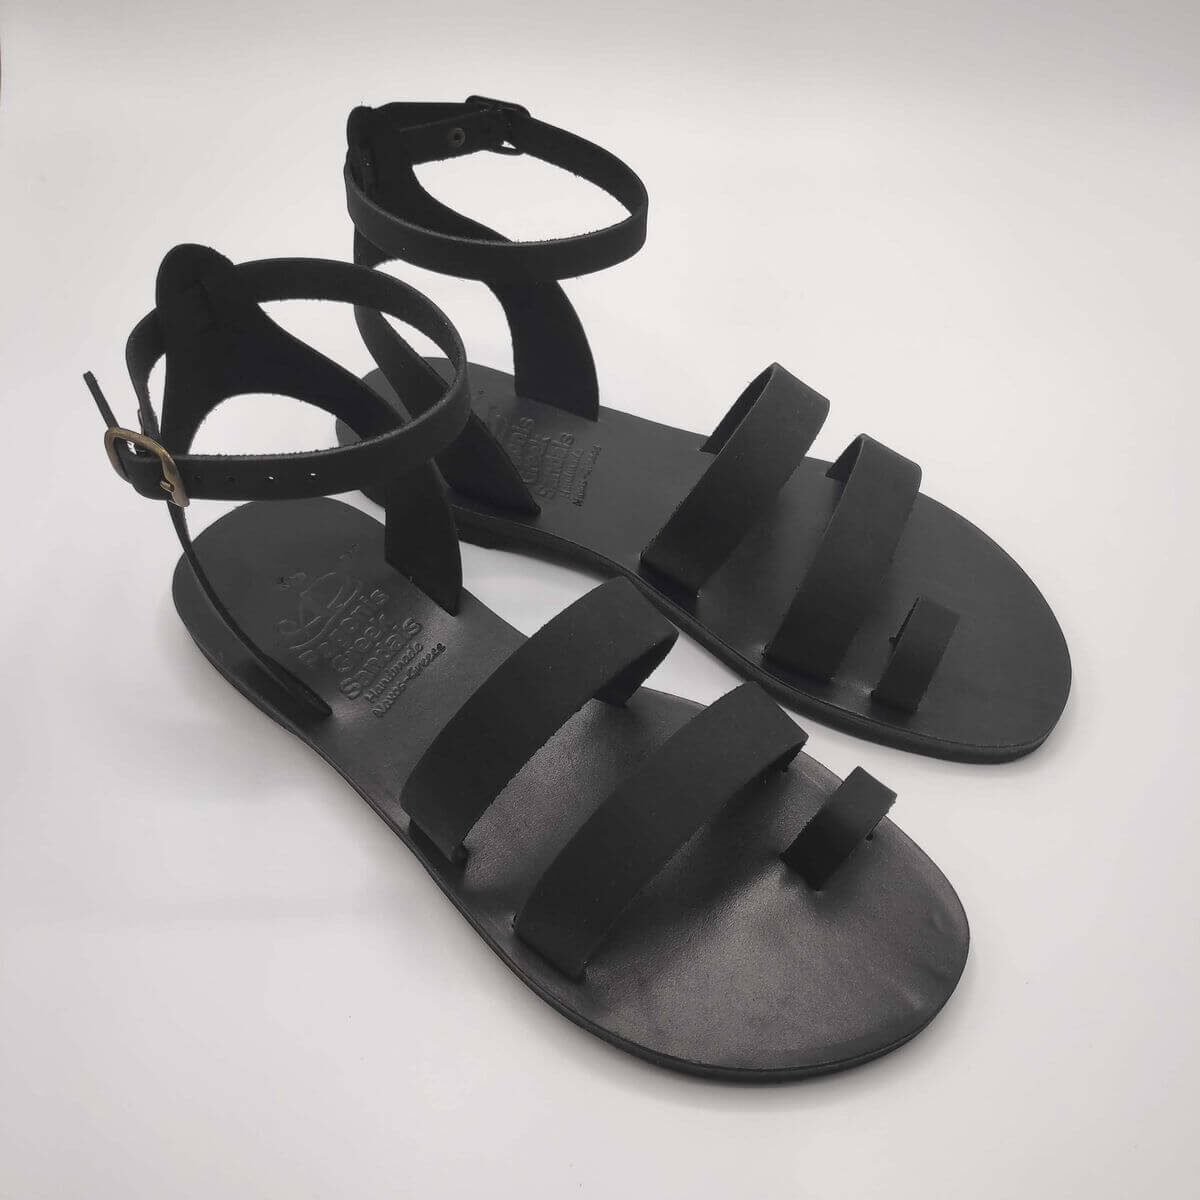 Total Black in Nubuck leather dressy sandals with two straps, toe ring and high ankle strap, side view